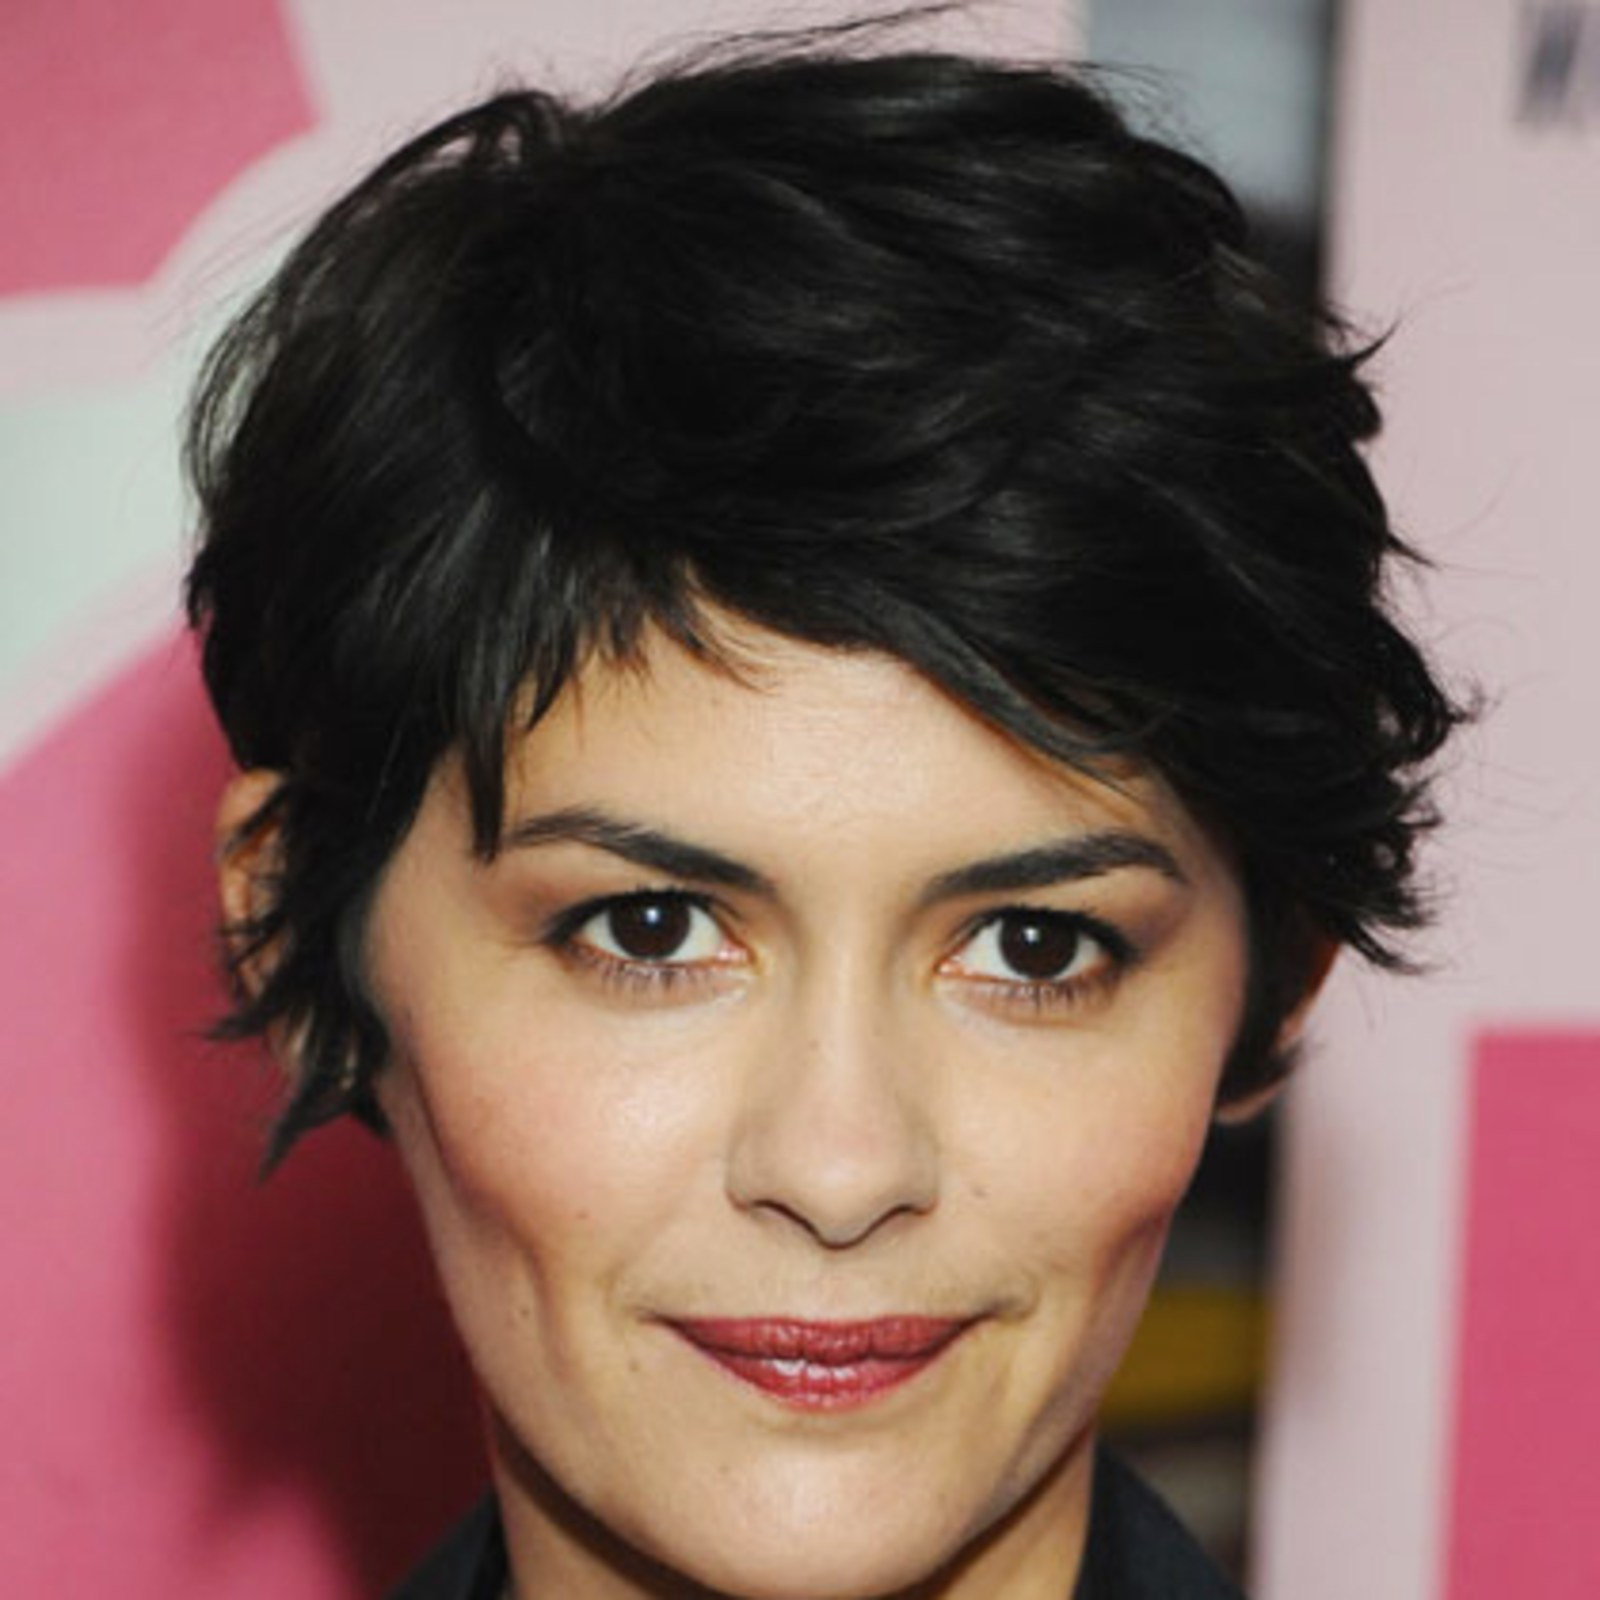 The 6 Most Stylish Short Haircuts – Allure Intended For Audrey Tautou Short Haircuts (View 22 of 25)